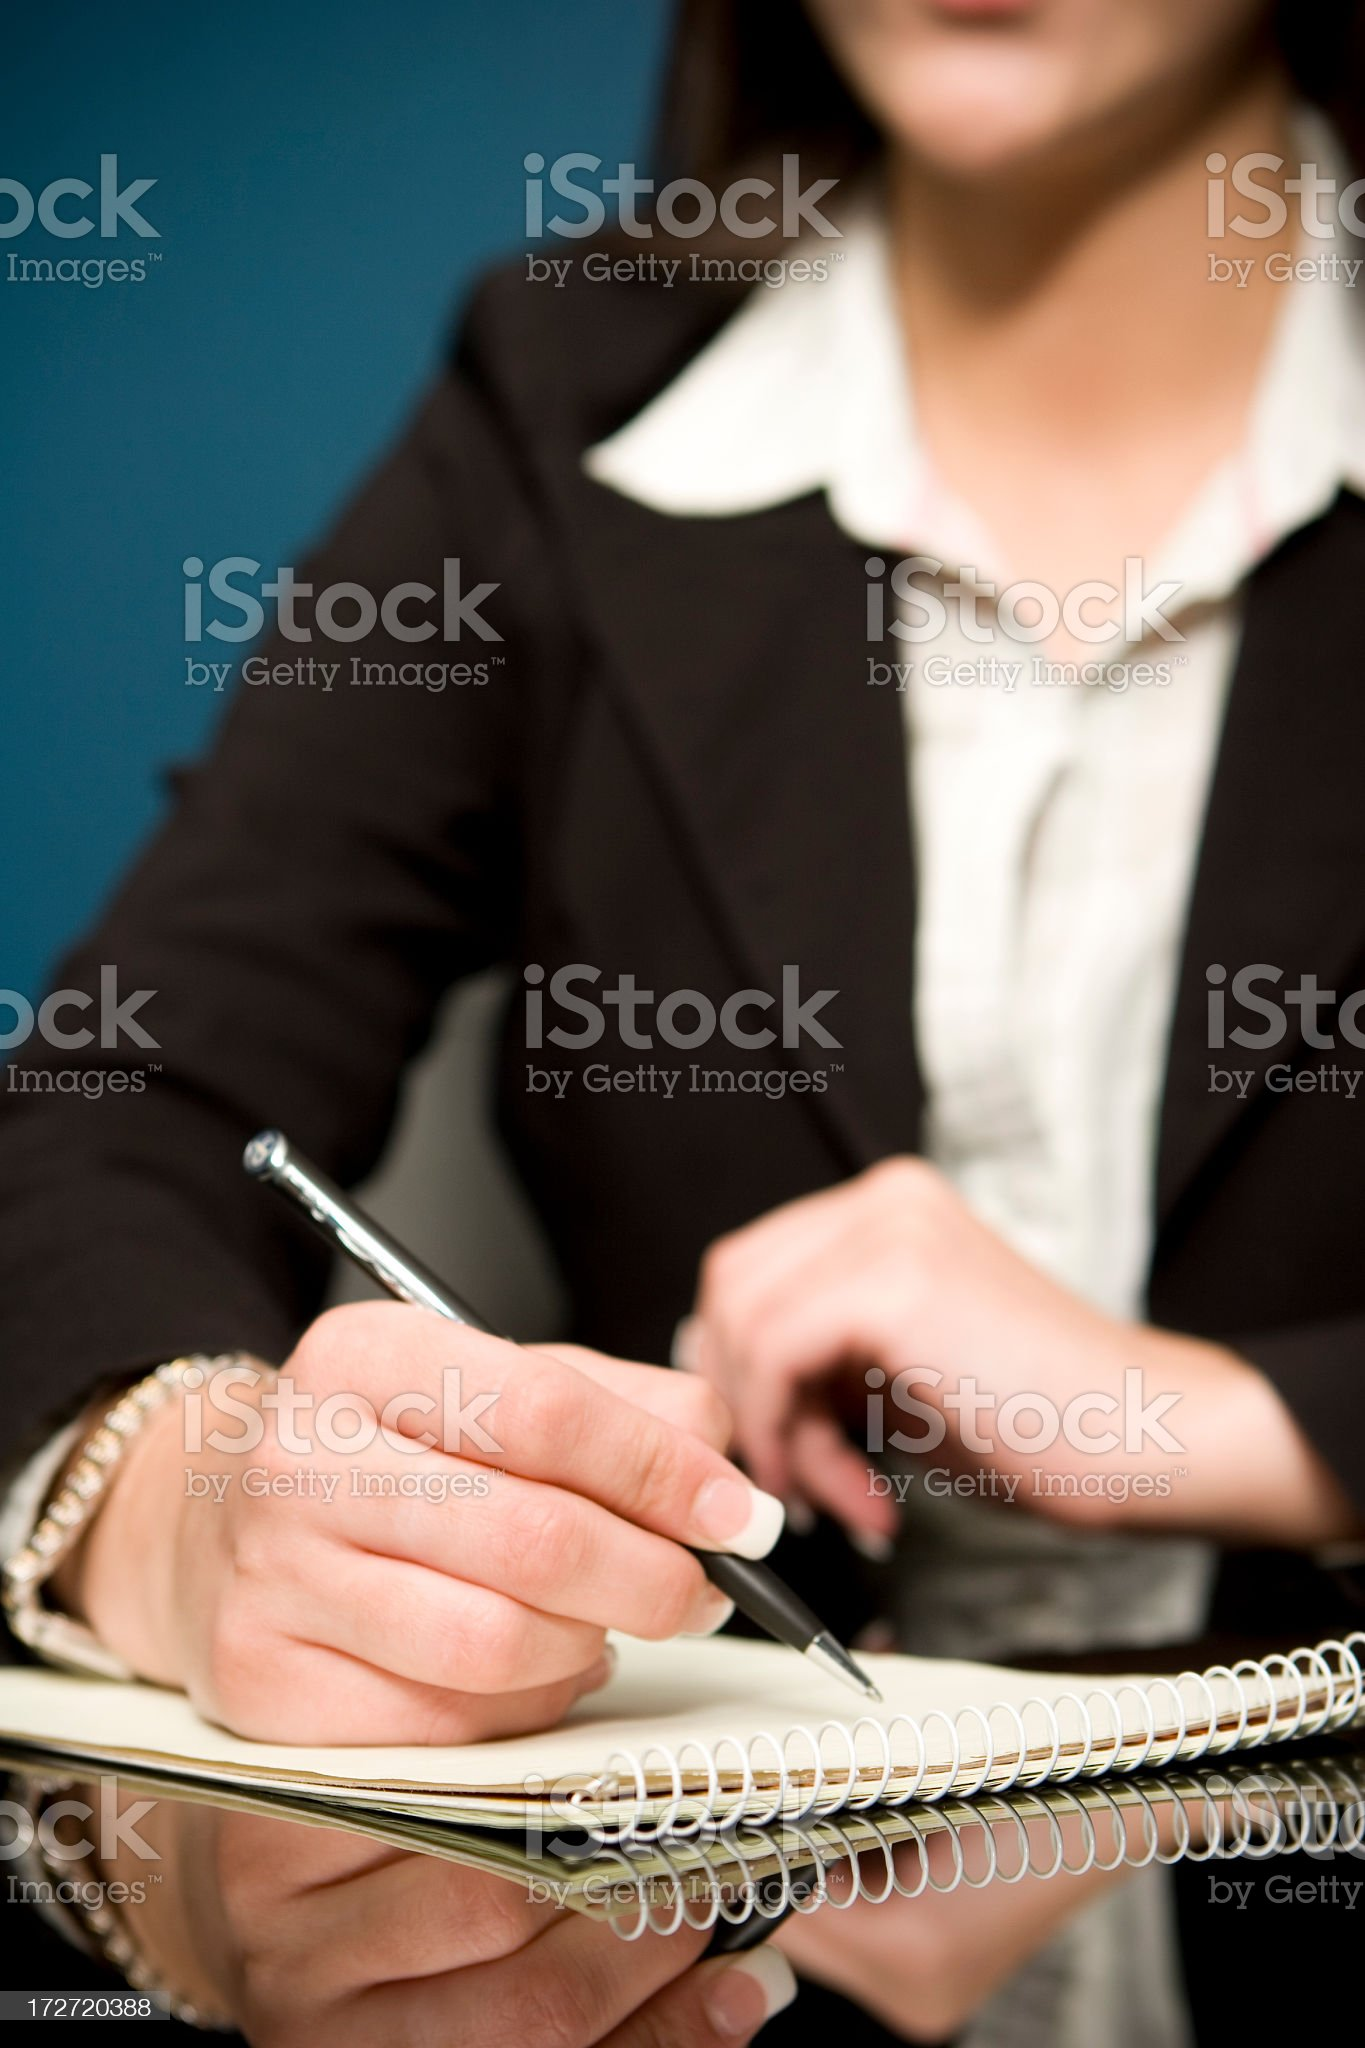 Woman with french manicure in a business suit taking notes royalty-free stock photo